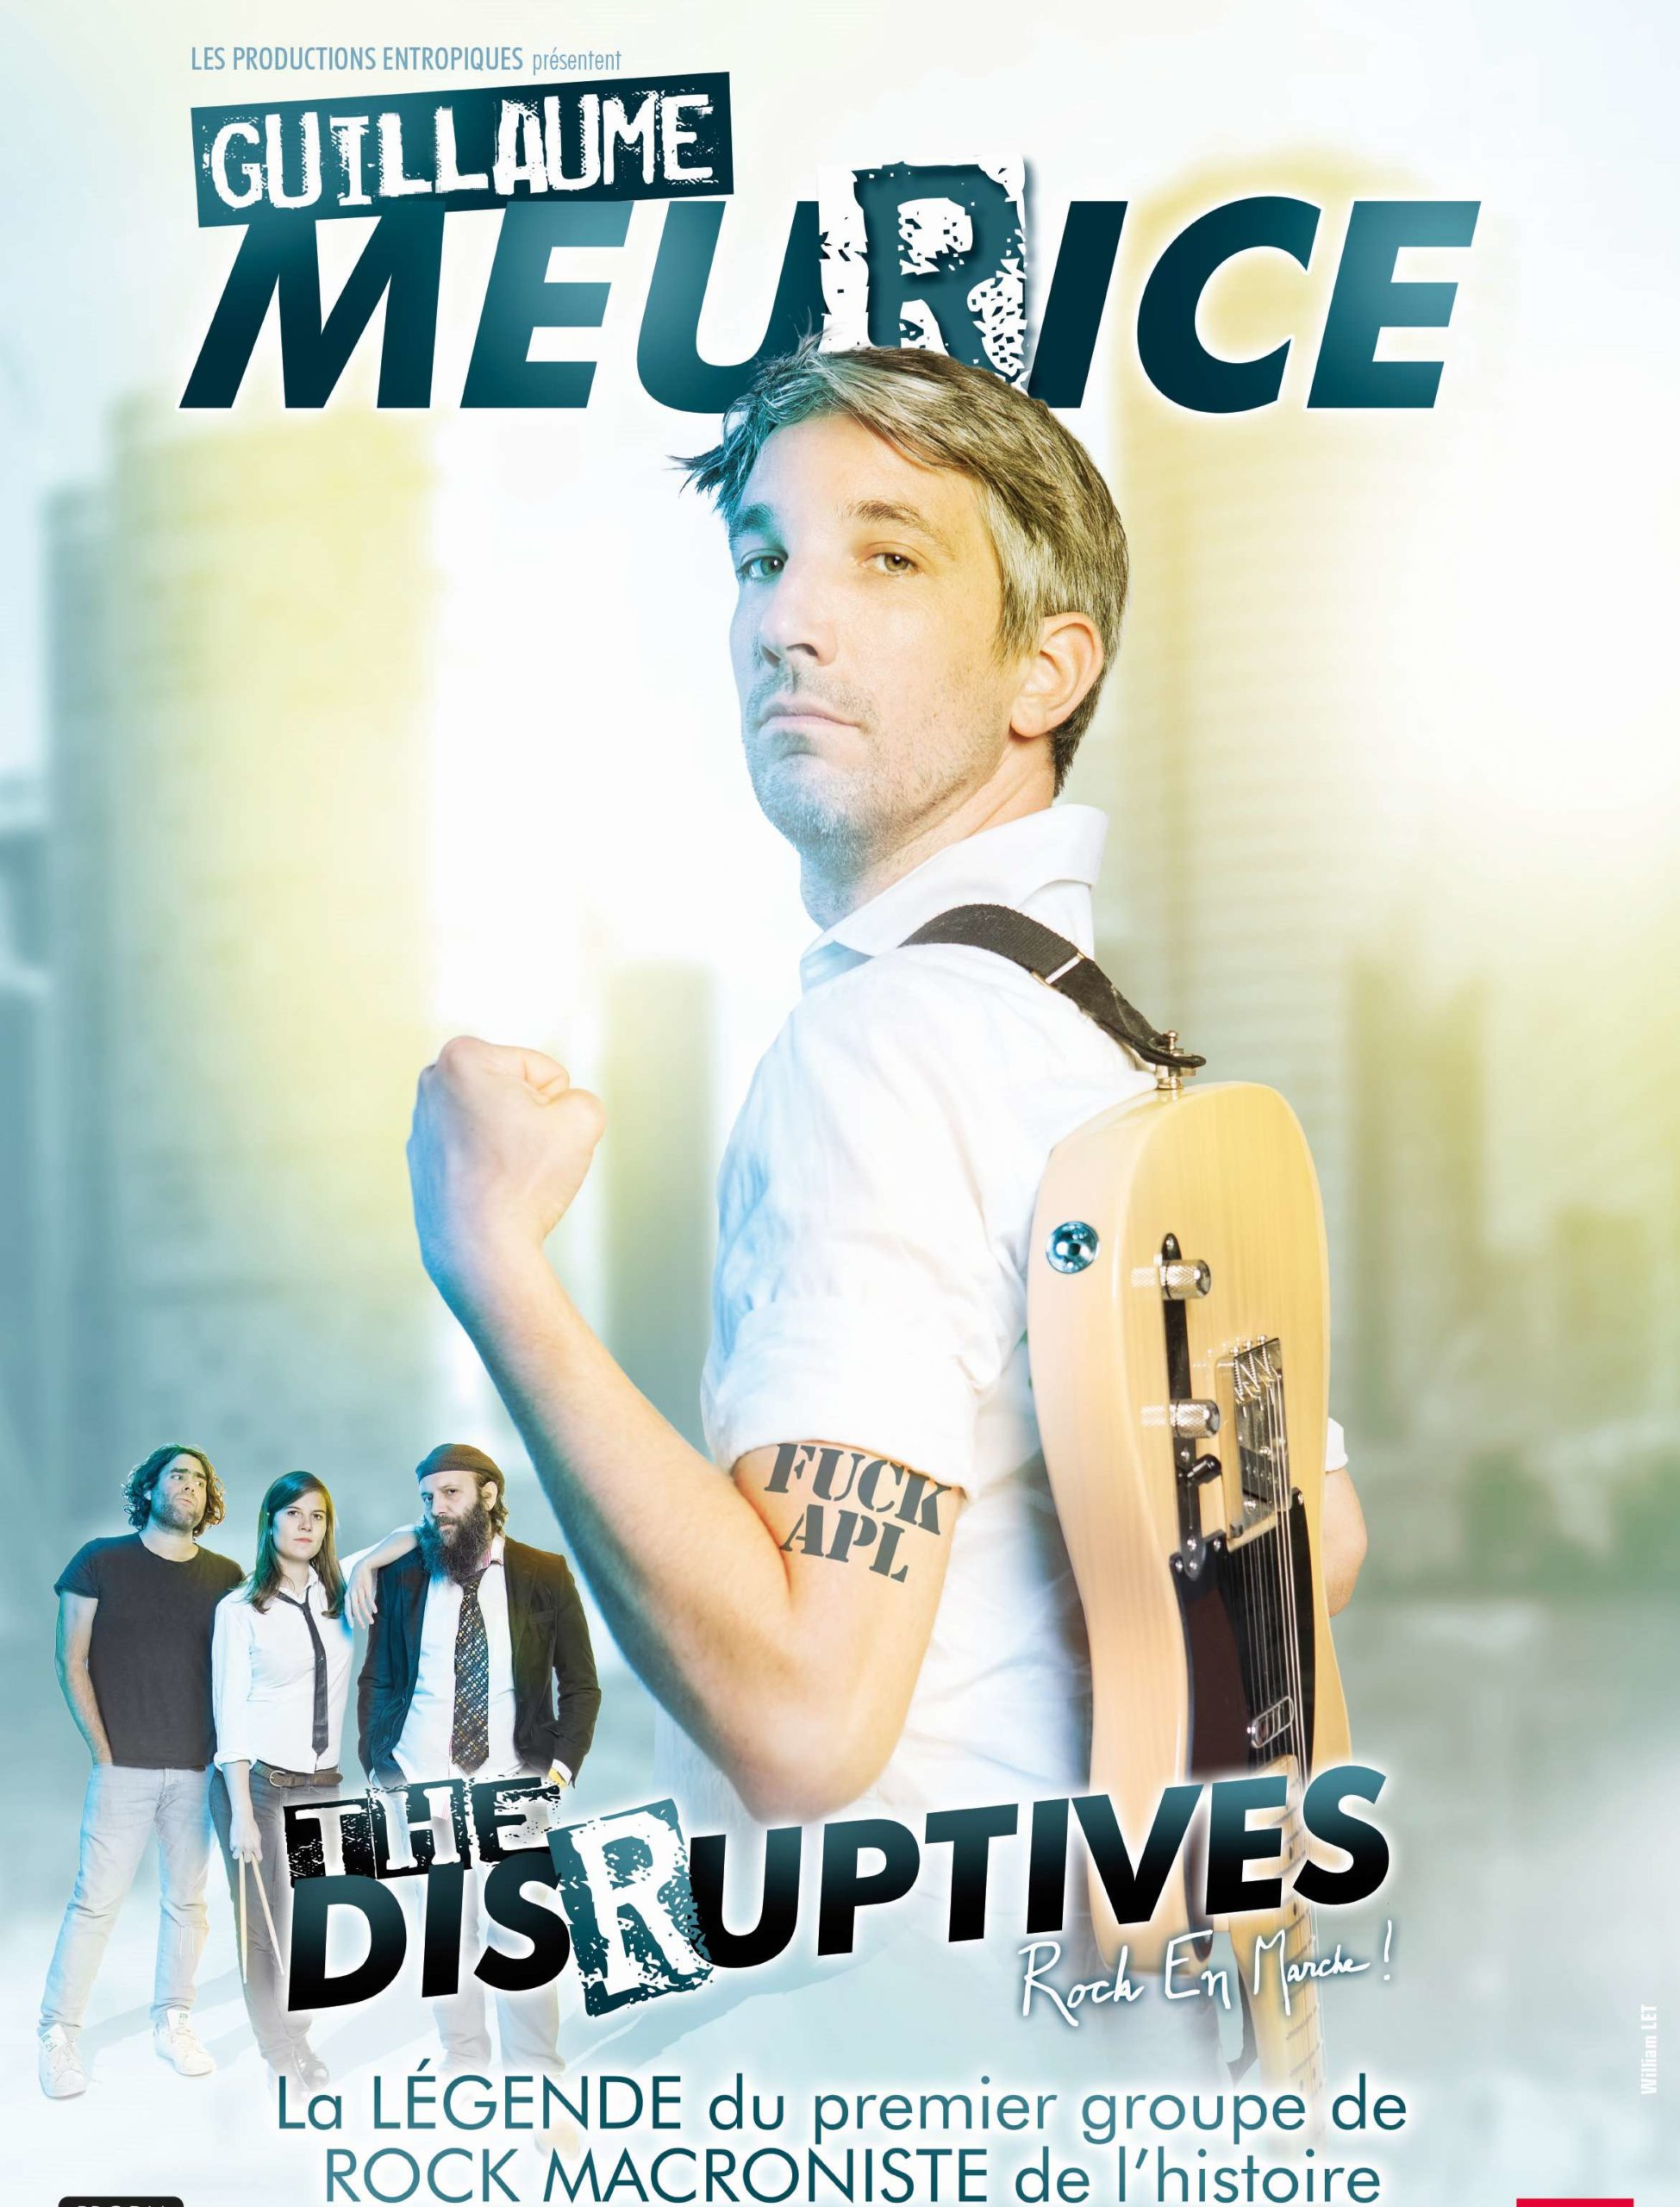 Spectacle : Guillaume Meurice & the Disruptives